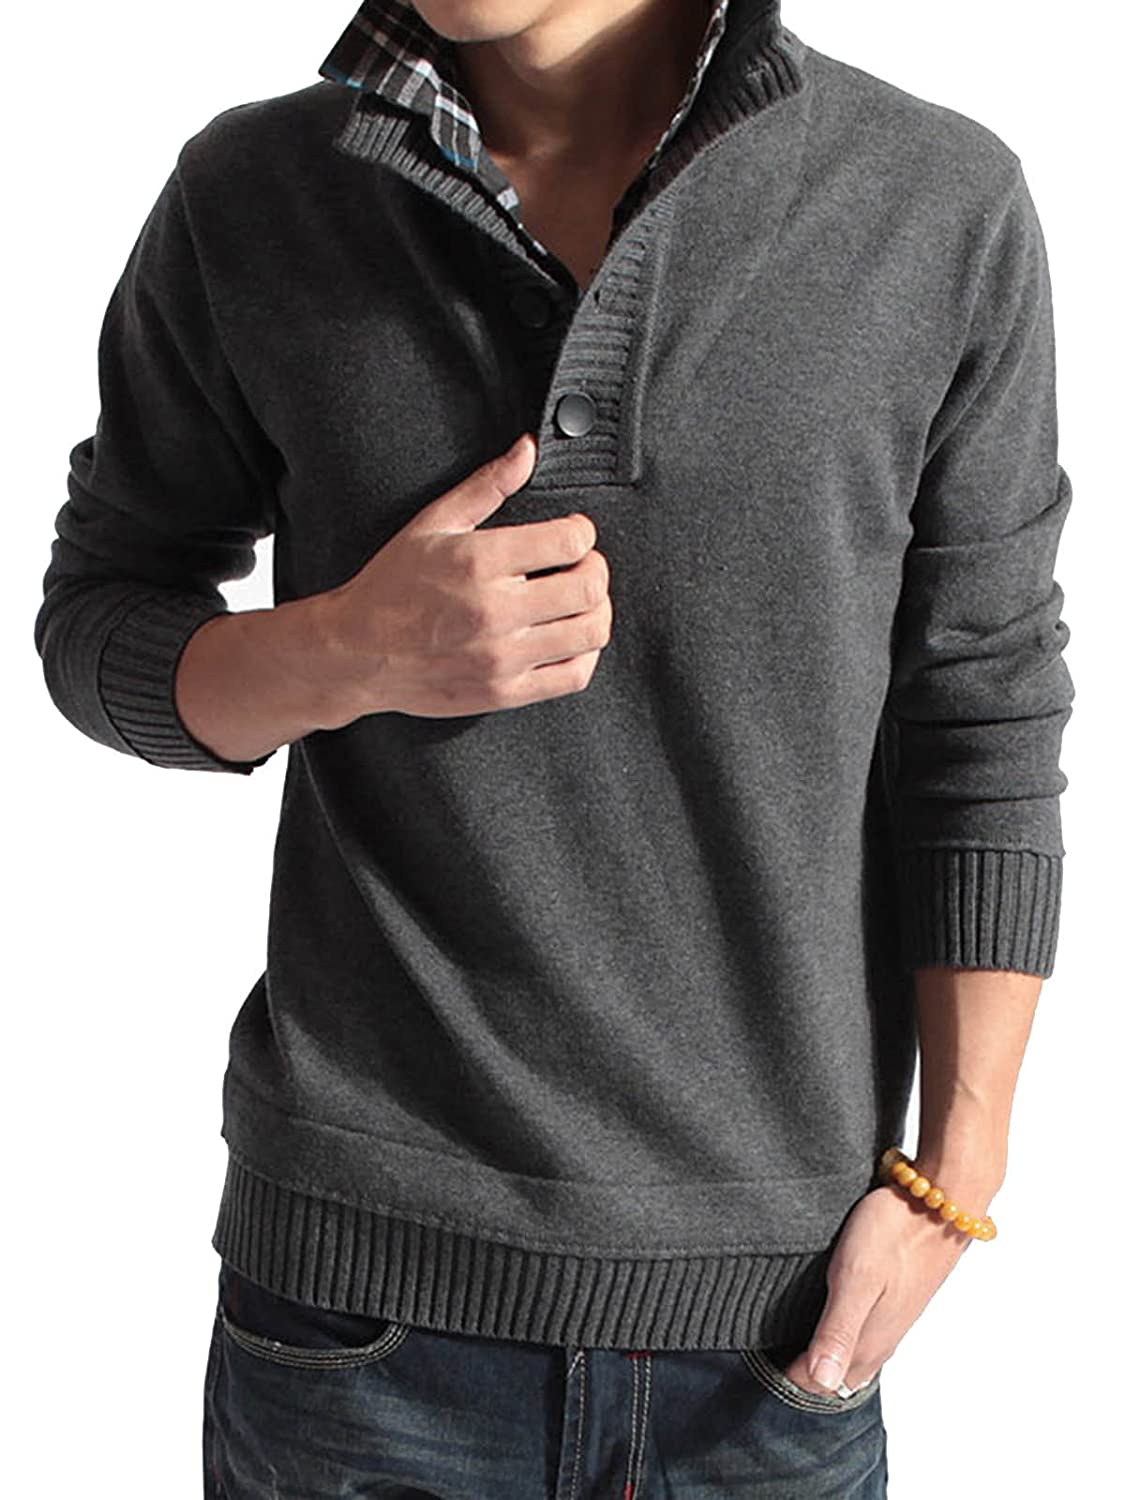 Vogue of Eden Men's Casual Long Sleeve Lapel Neck Knit Sweater with button